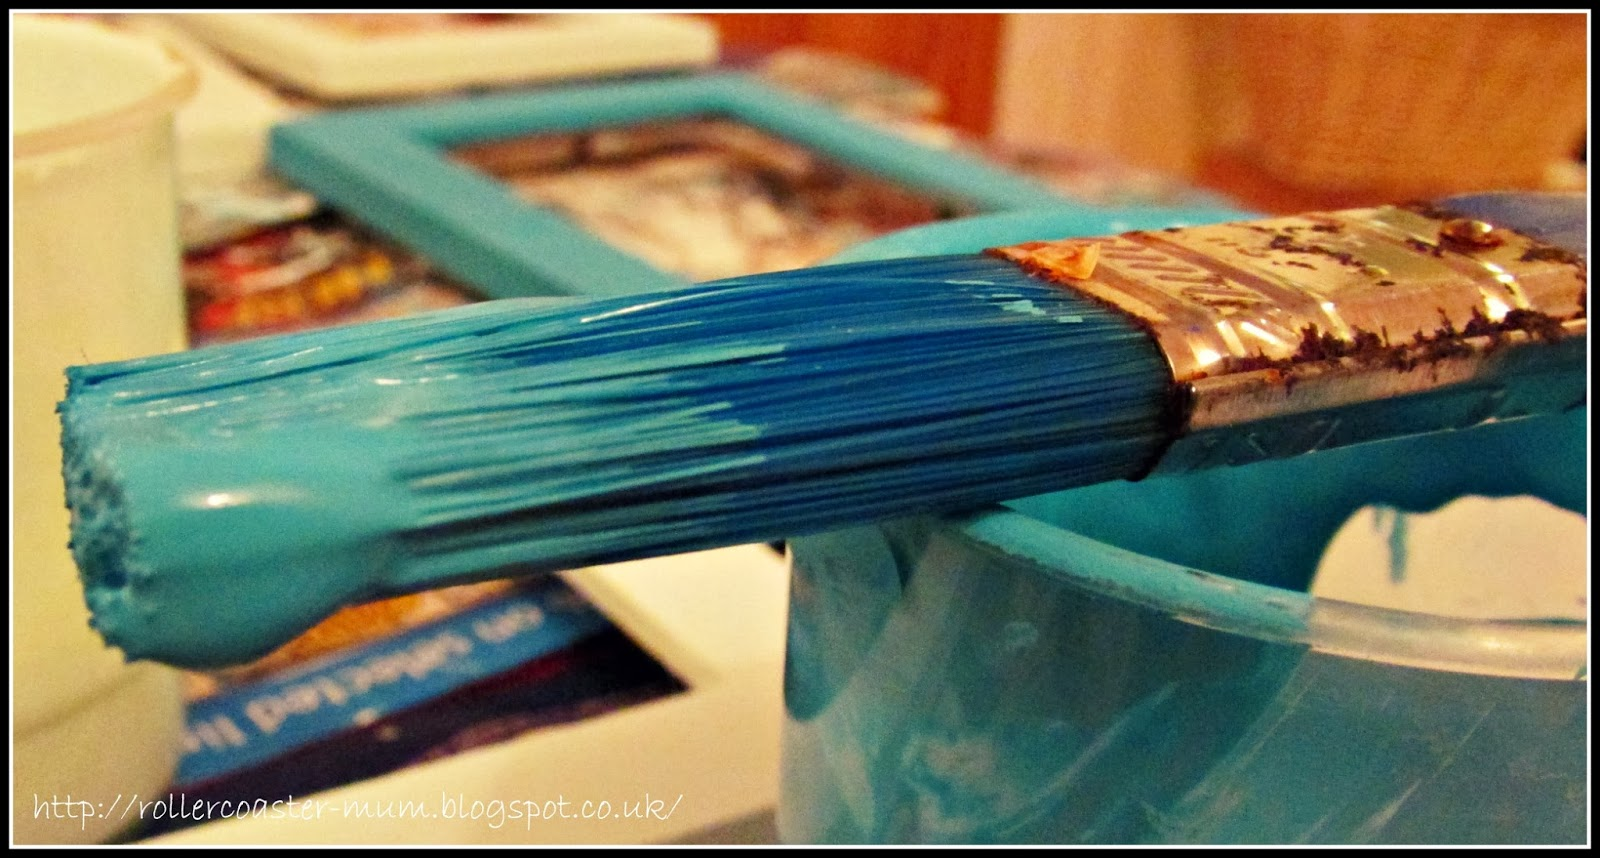 Painting with turquoise paint